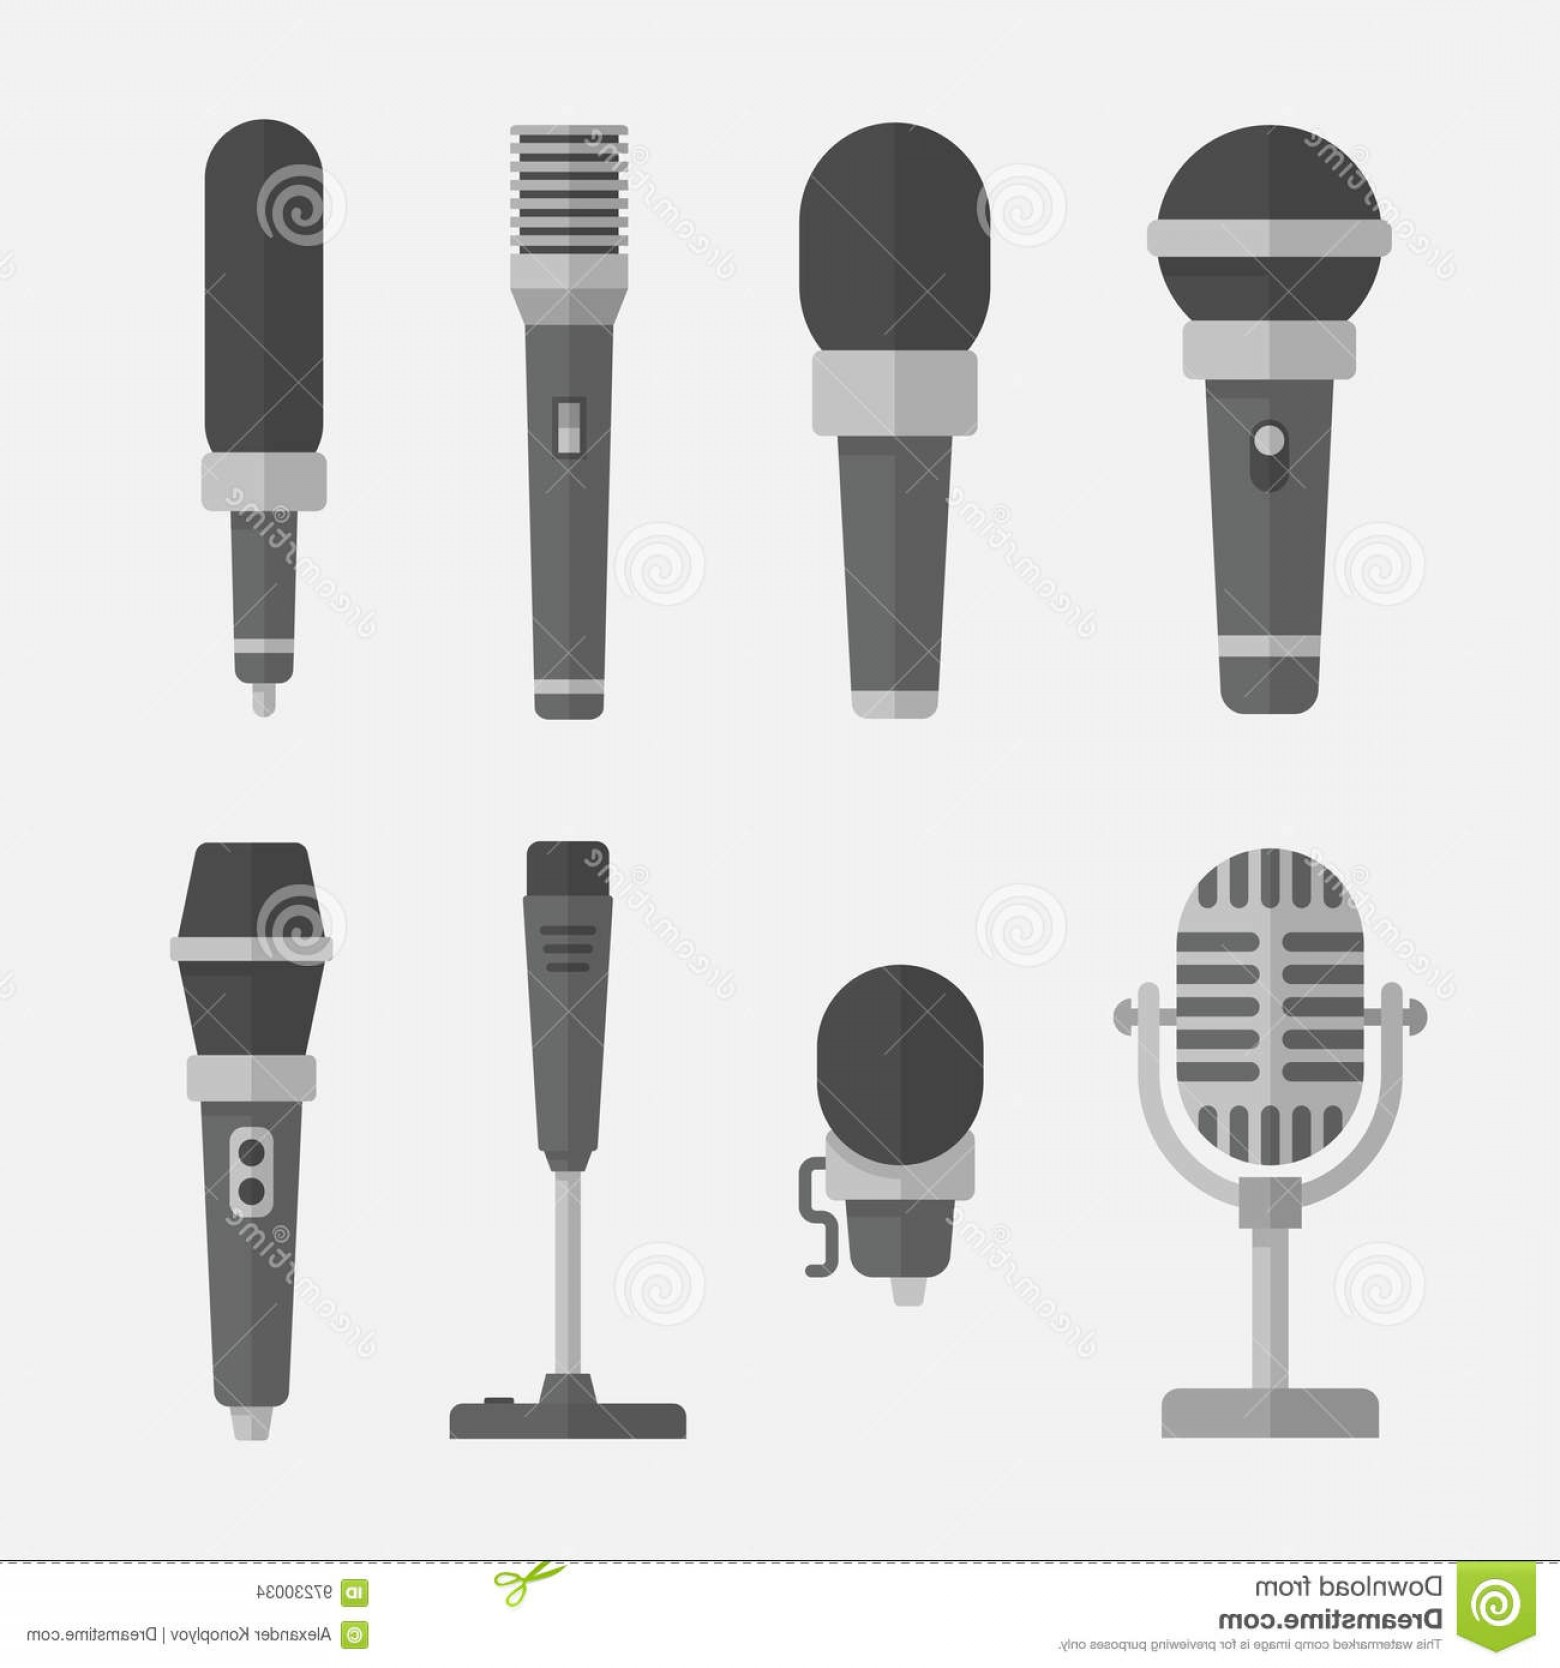 Mics Vector Designs: Stock Illustration Microphones Vector Set Flat Style Isolated Background Icons To Illustrate Interview Podcast Reportage Song Image